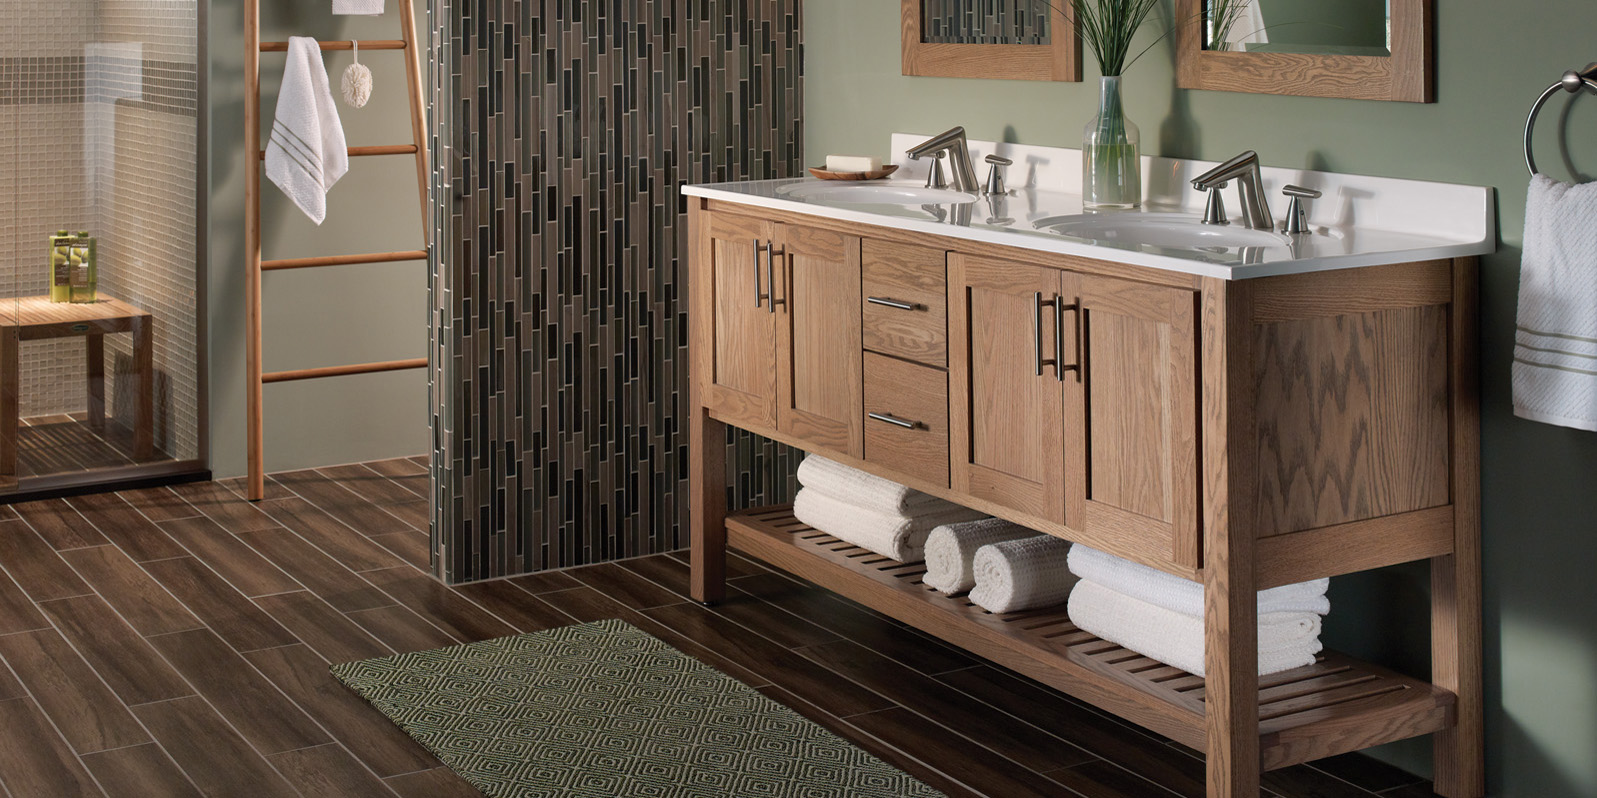 Bertch Bath Vanities - Many collections, Styles and finishes to choose from.Complete line up of Vanities, Linens, Medicine Cabinets, Moldings, Tops and More.....